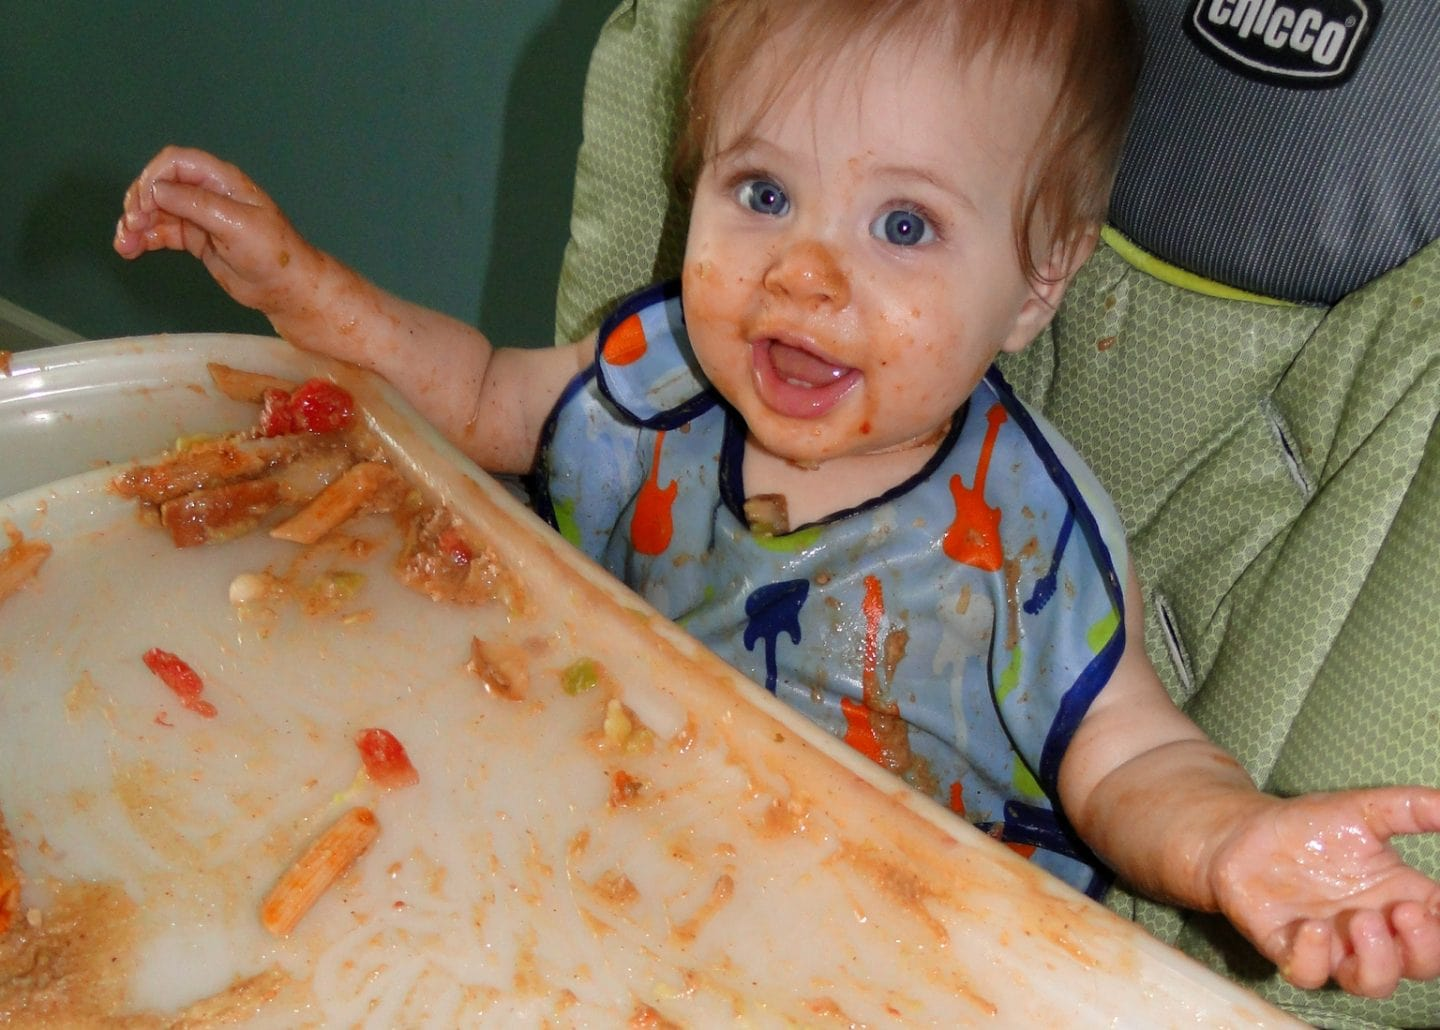 baby making mess in high chair on baby led weaning guide